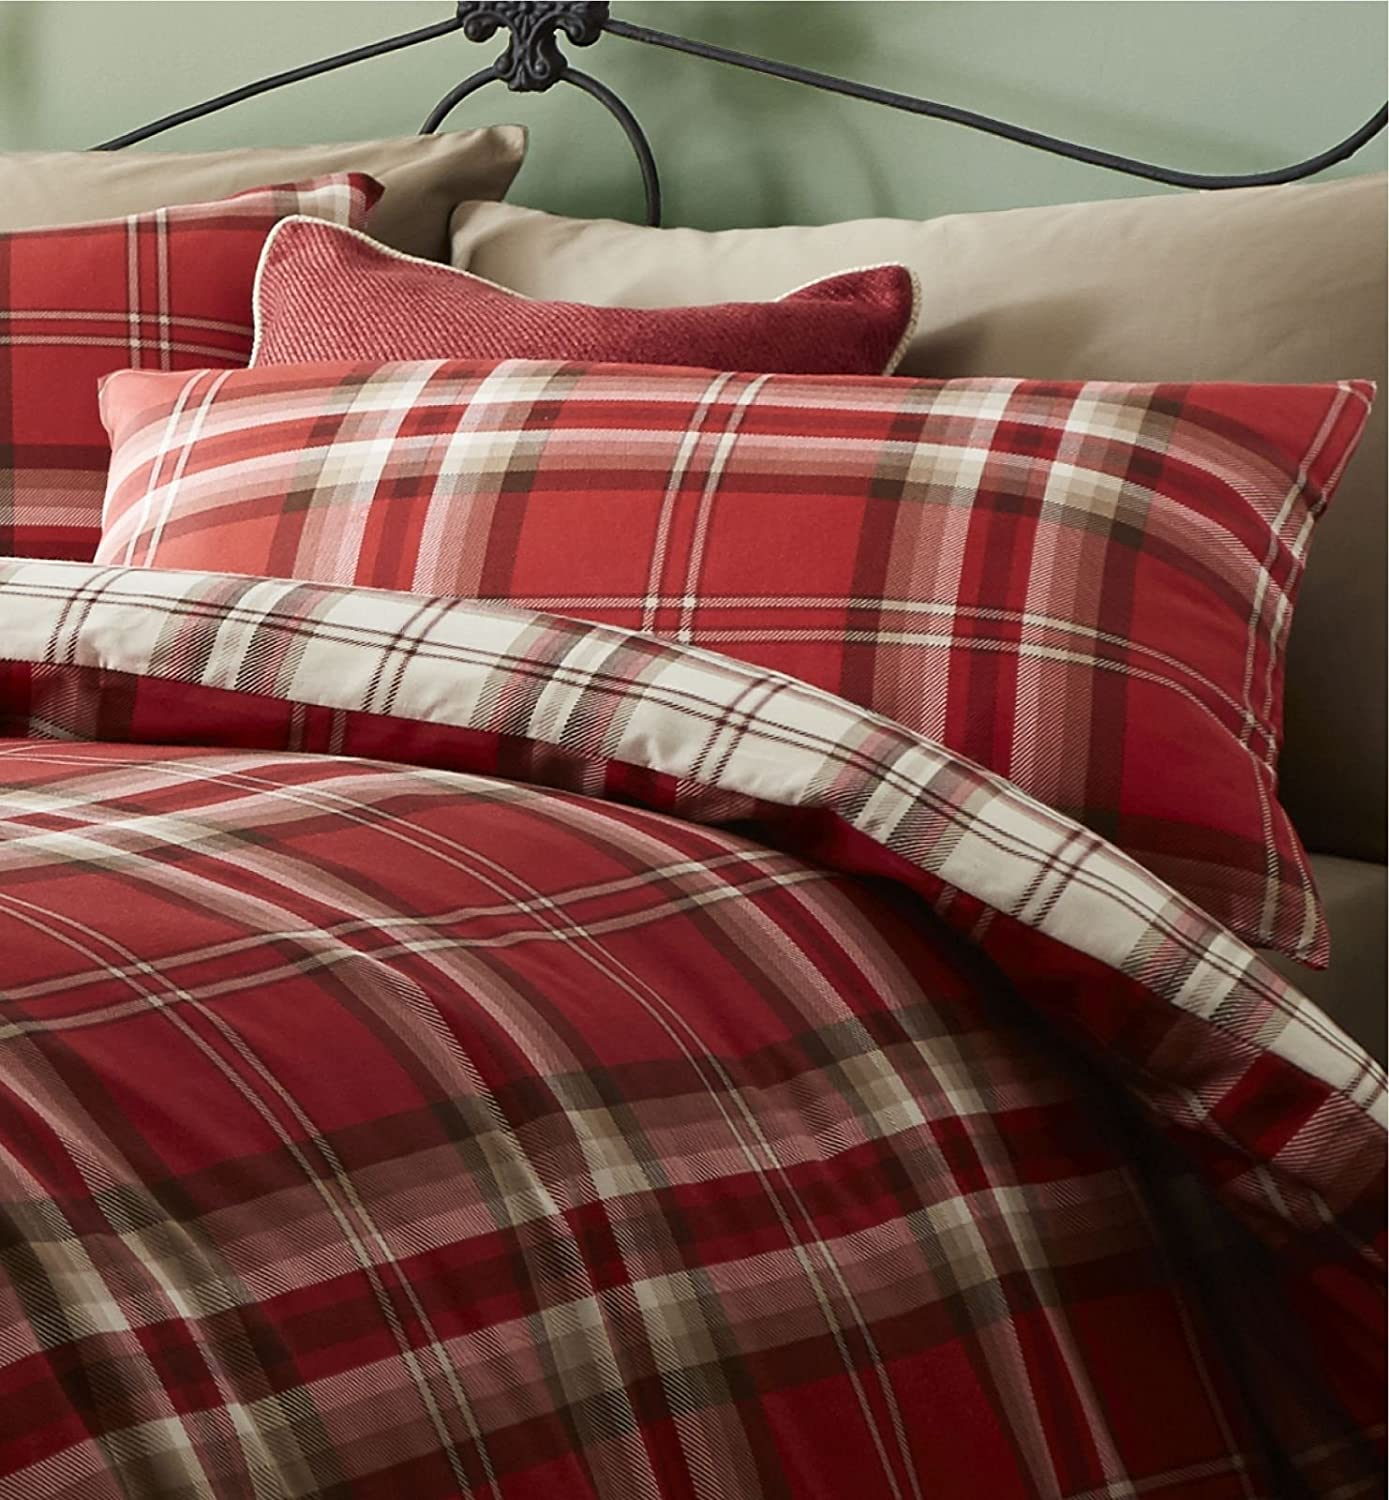 bed cover ip sizes piece plus a comforter walmart plaid mainstays bag grey bedding in multiple red set duvet com